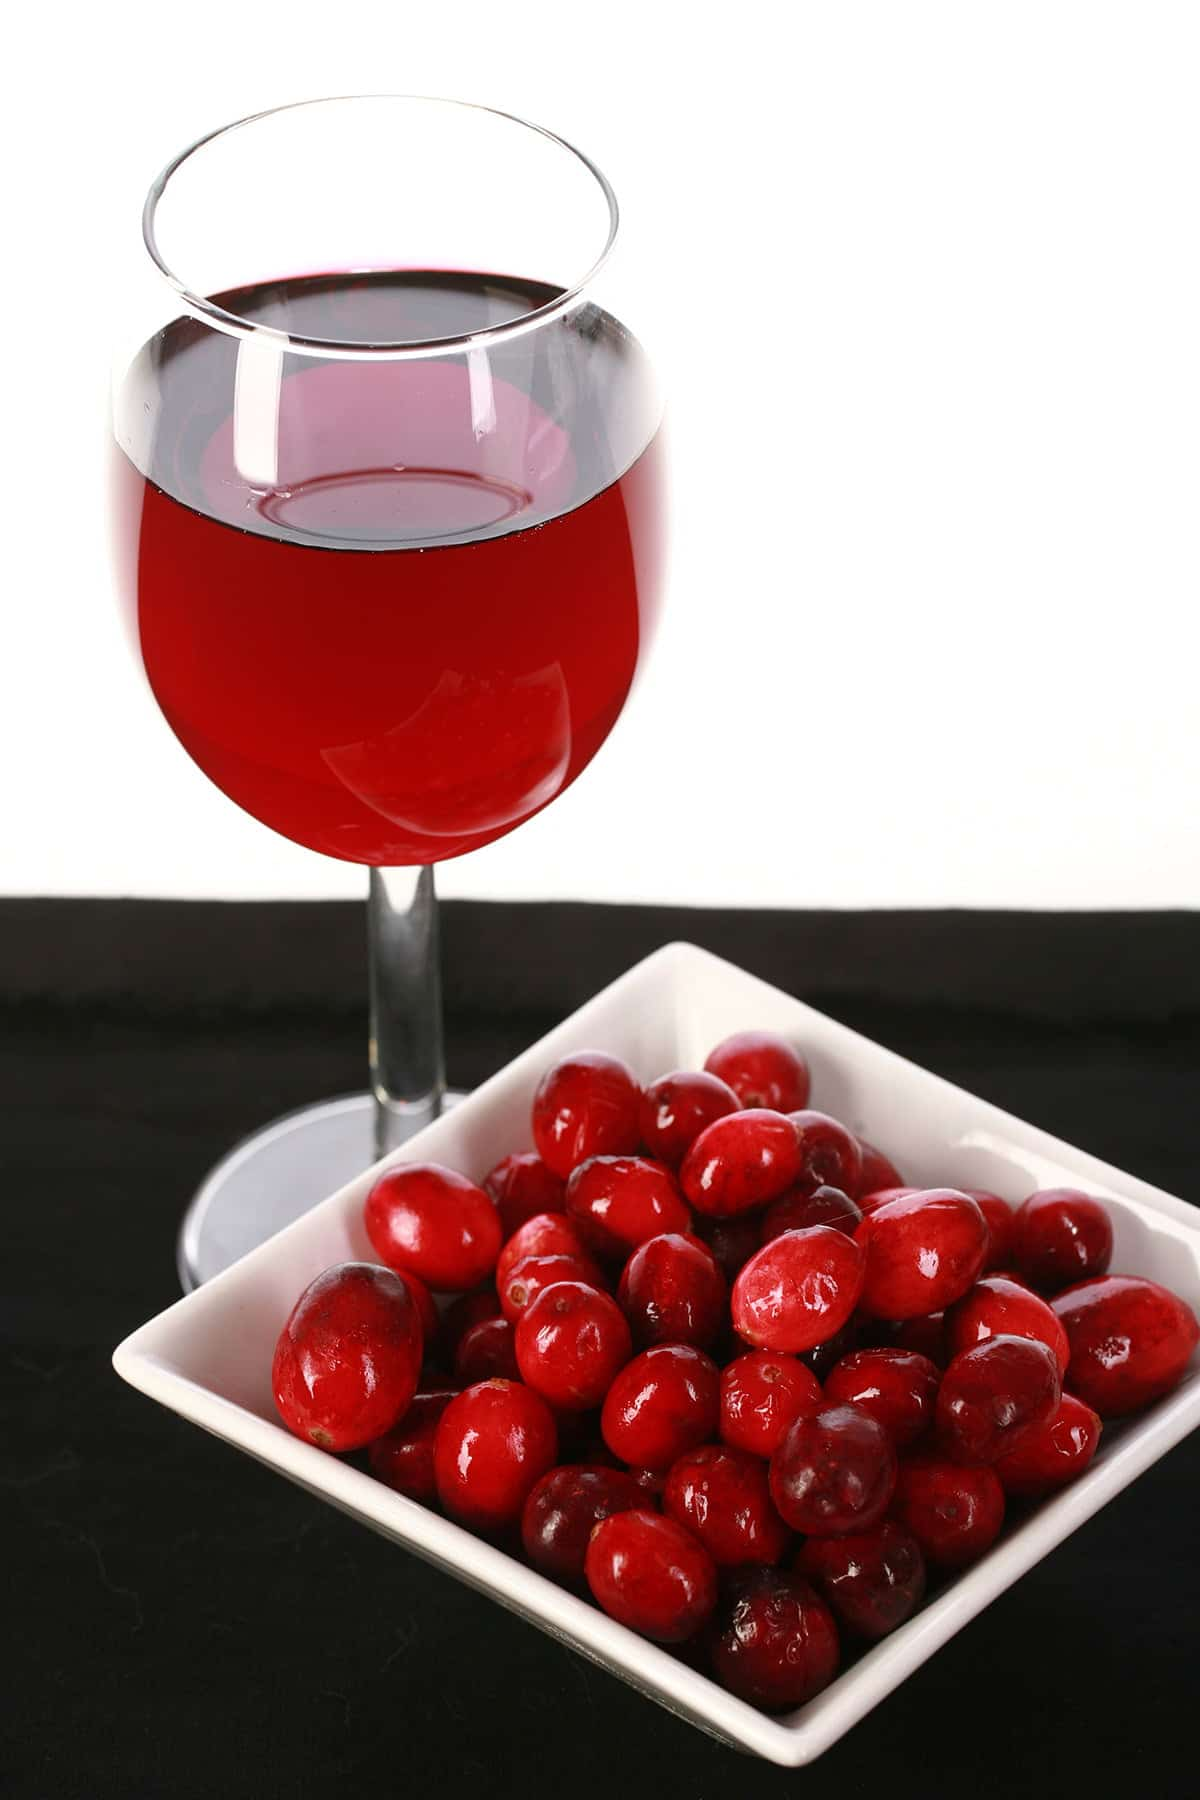 A glass of red wine is pictured next to a small bowl of fresh cranberries, against a white and black background.